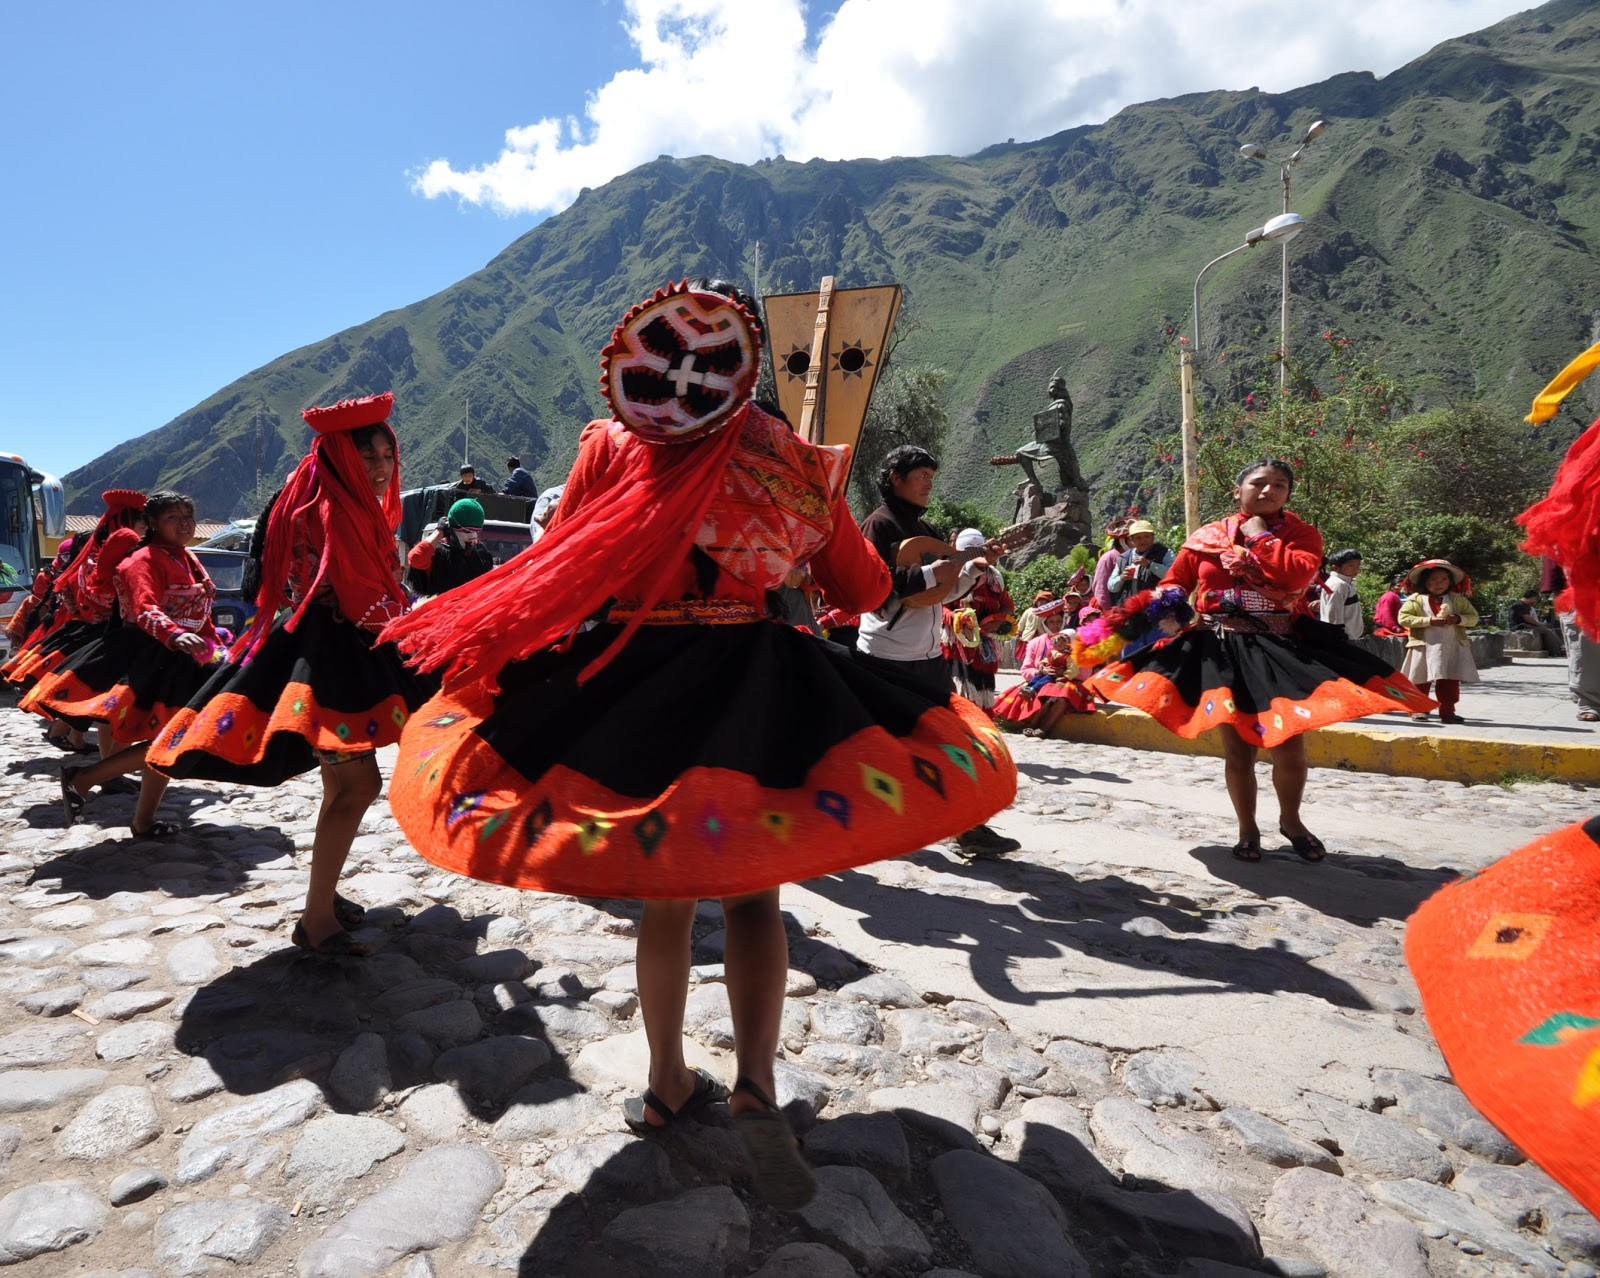 El Dia de los Reyes Magos features joyous celebrations, like this one in Peru.